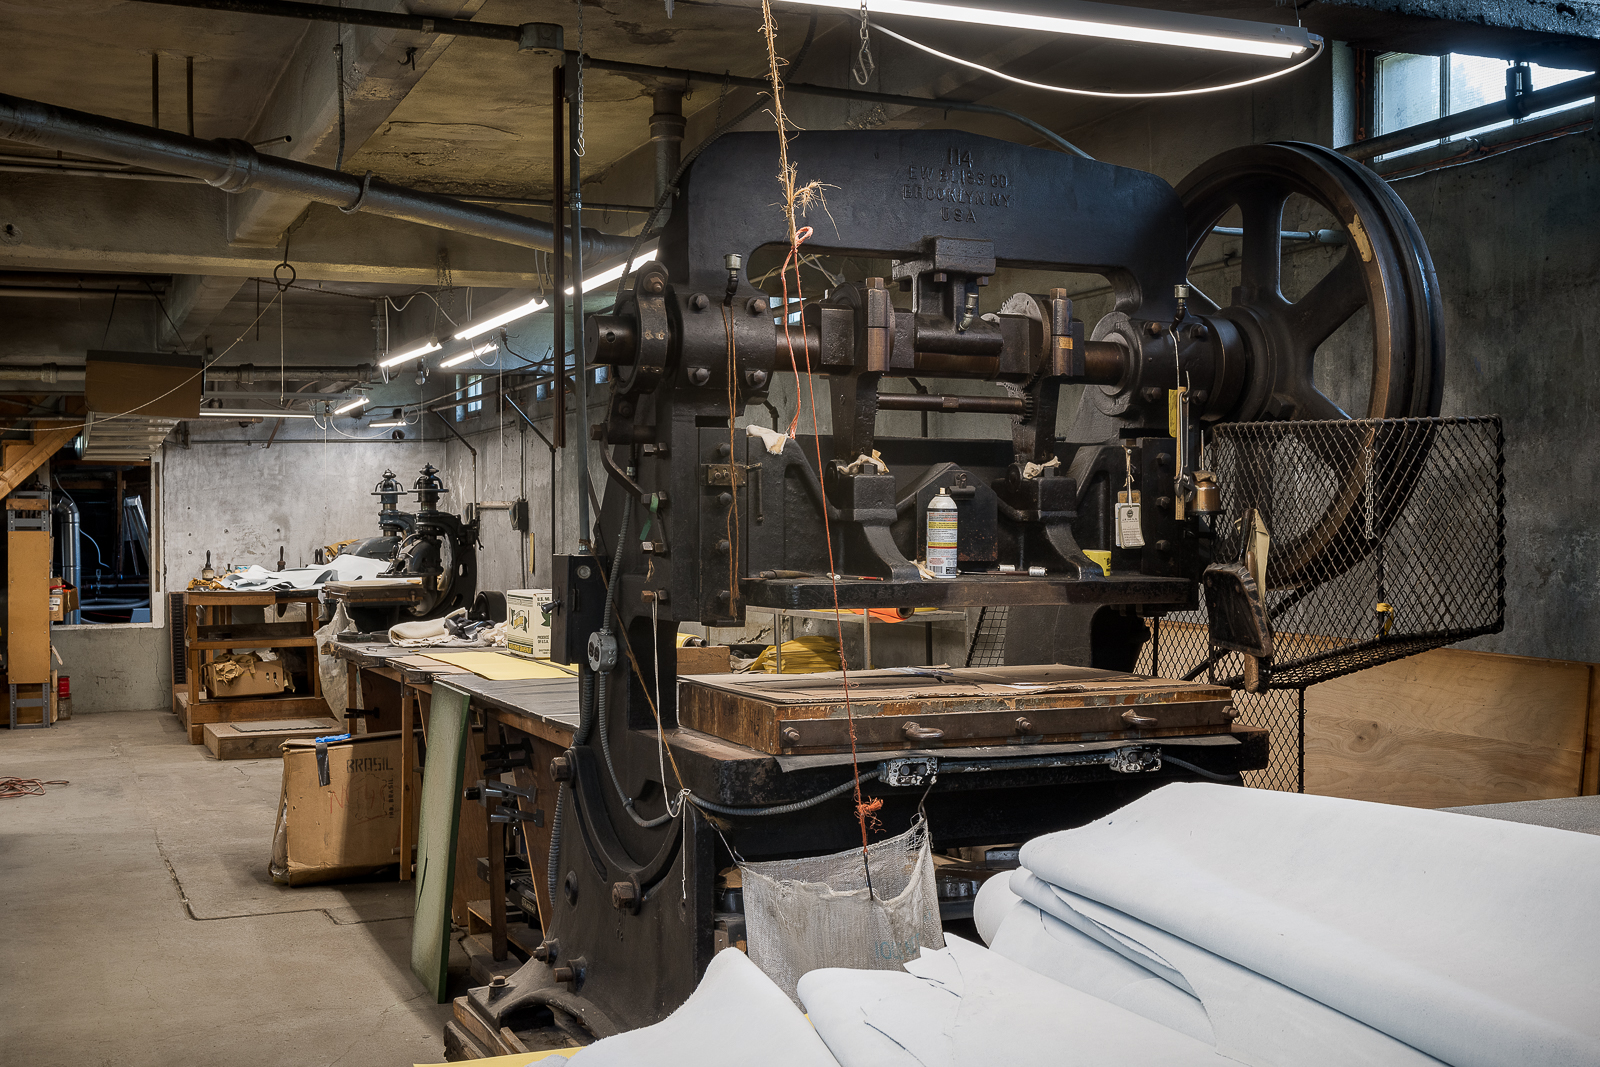 Industrial press is used to cut through multiple layers of fabric. Its original use was for cutting newspaper.